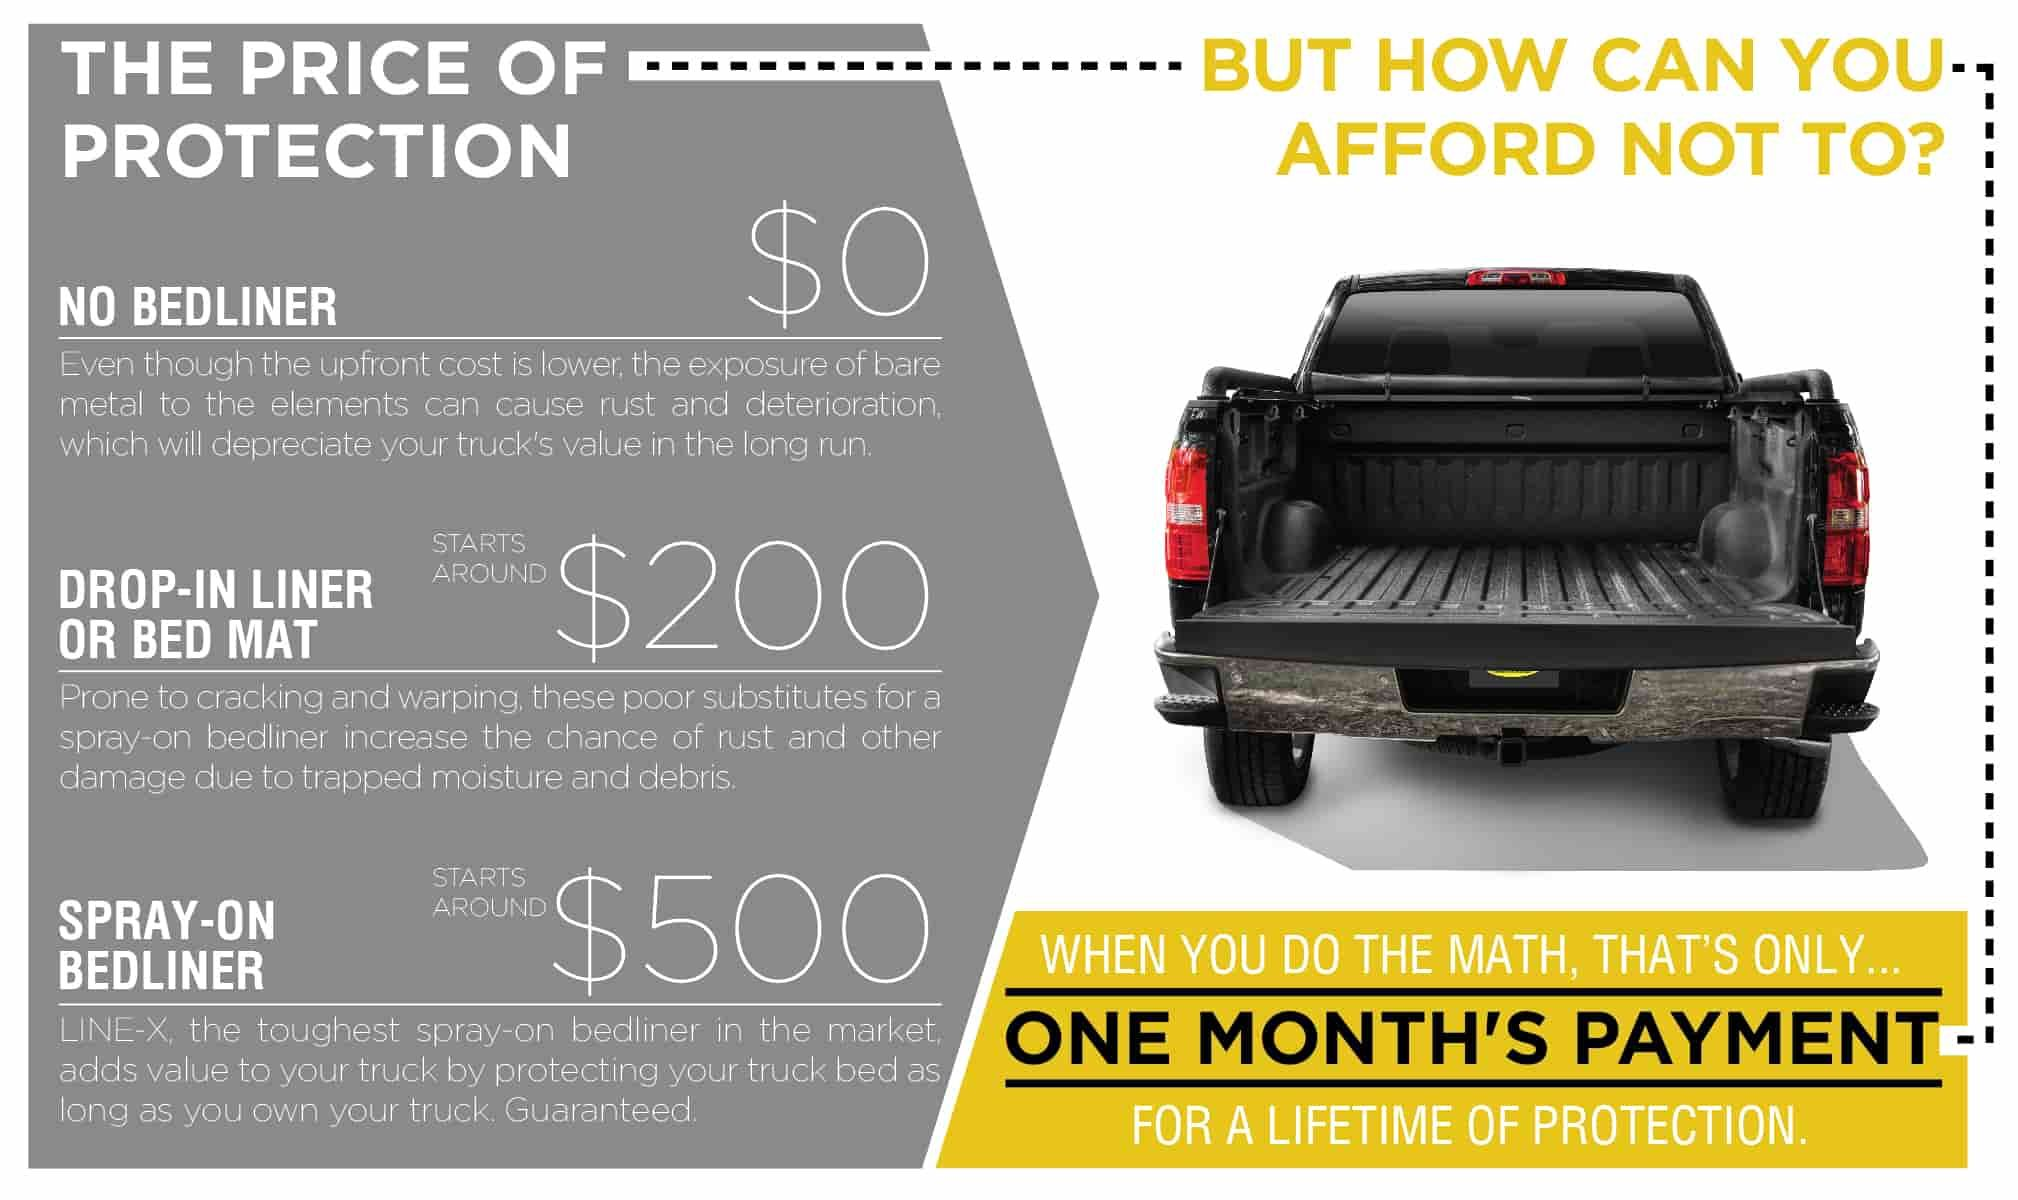 Adding Value And Virtual Indestructibility To Your Truck Costs Less